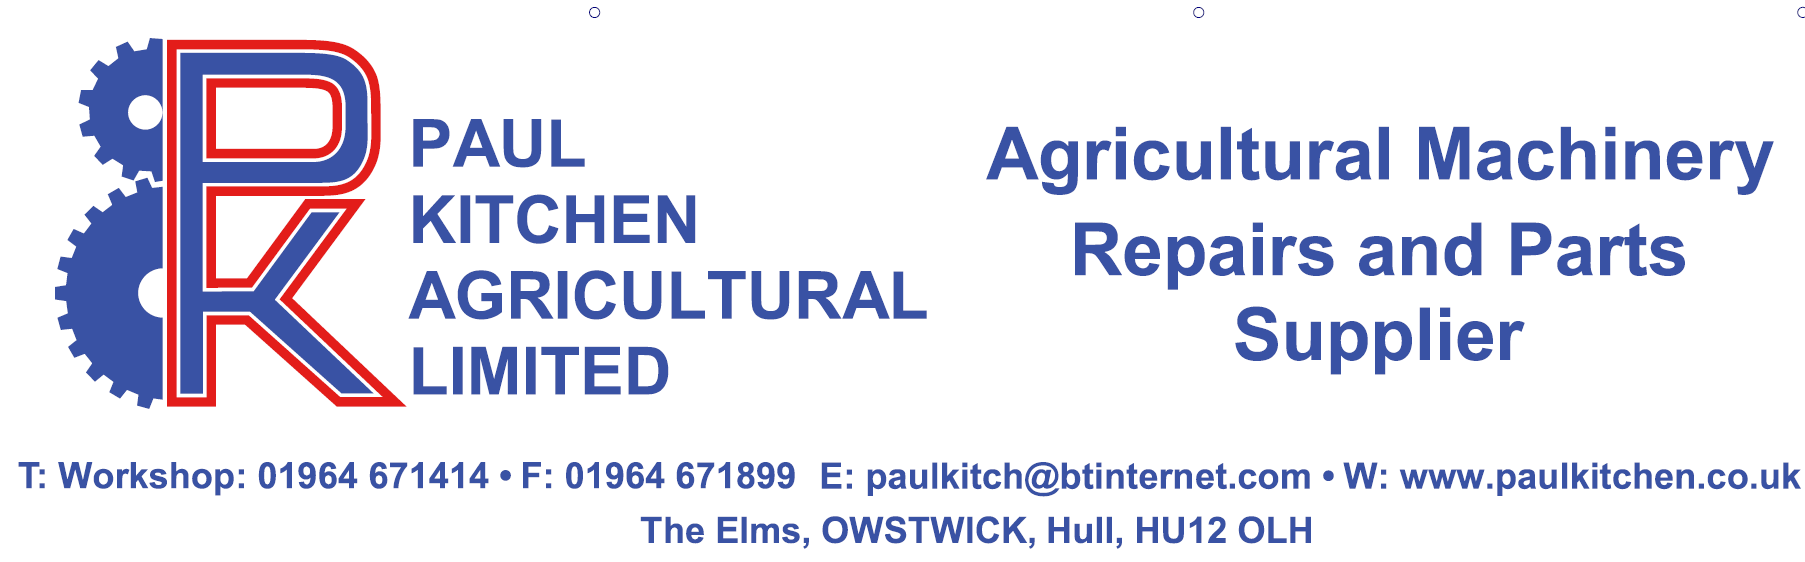 Paul Kitchen Agricultural